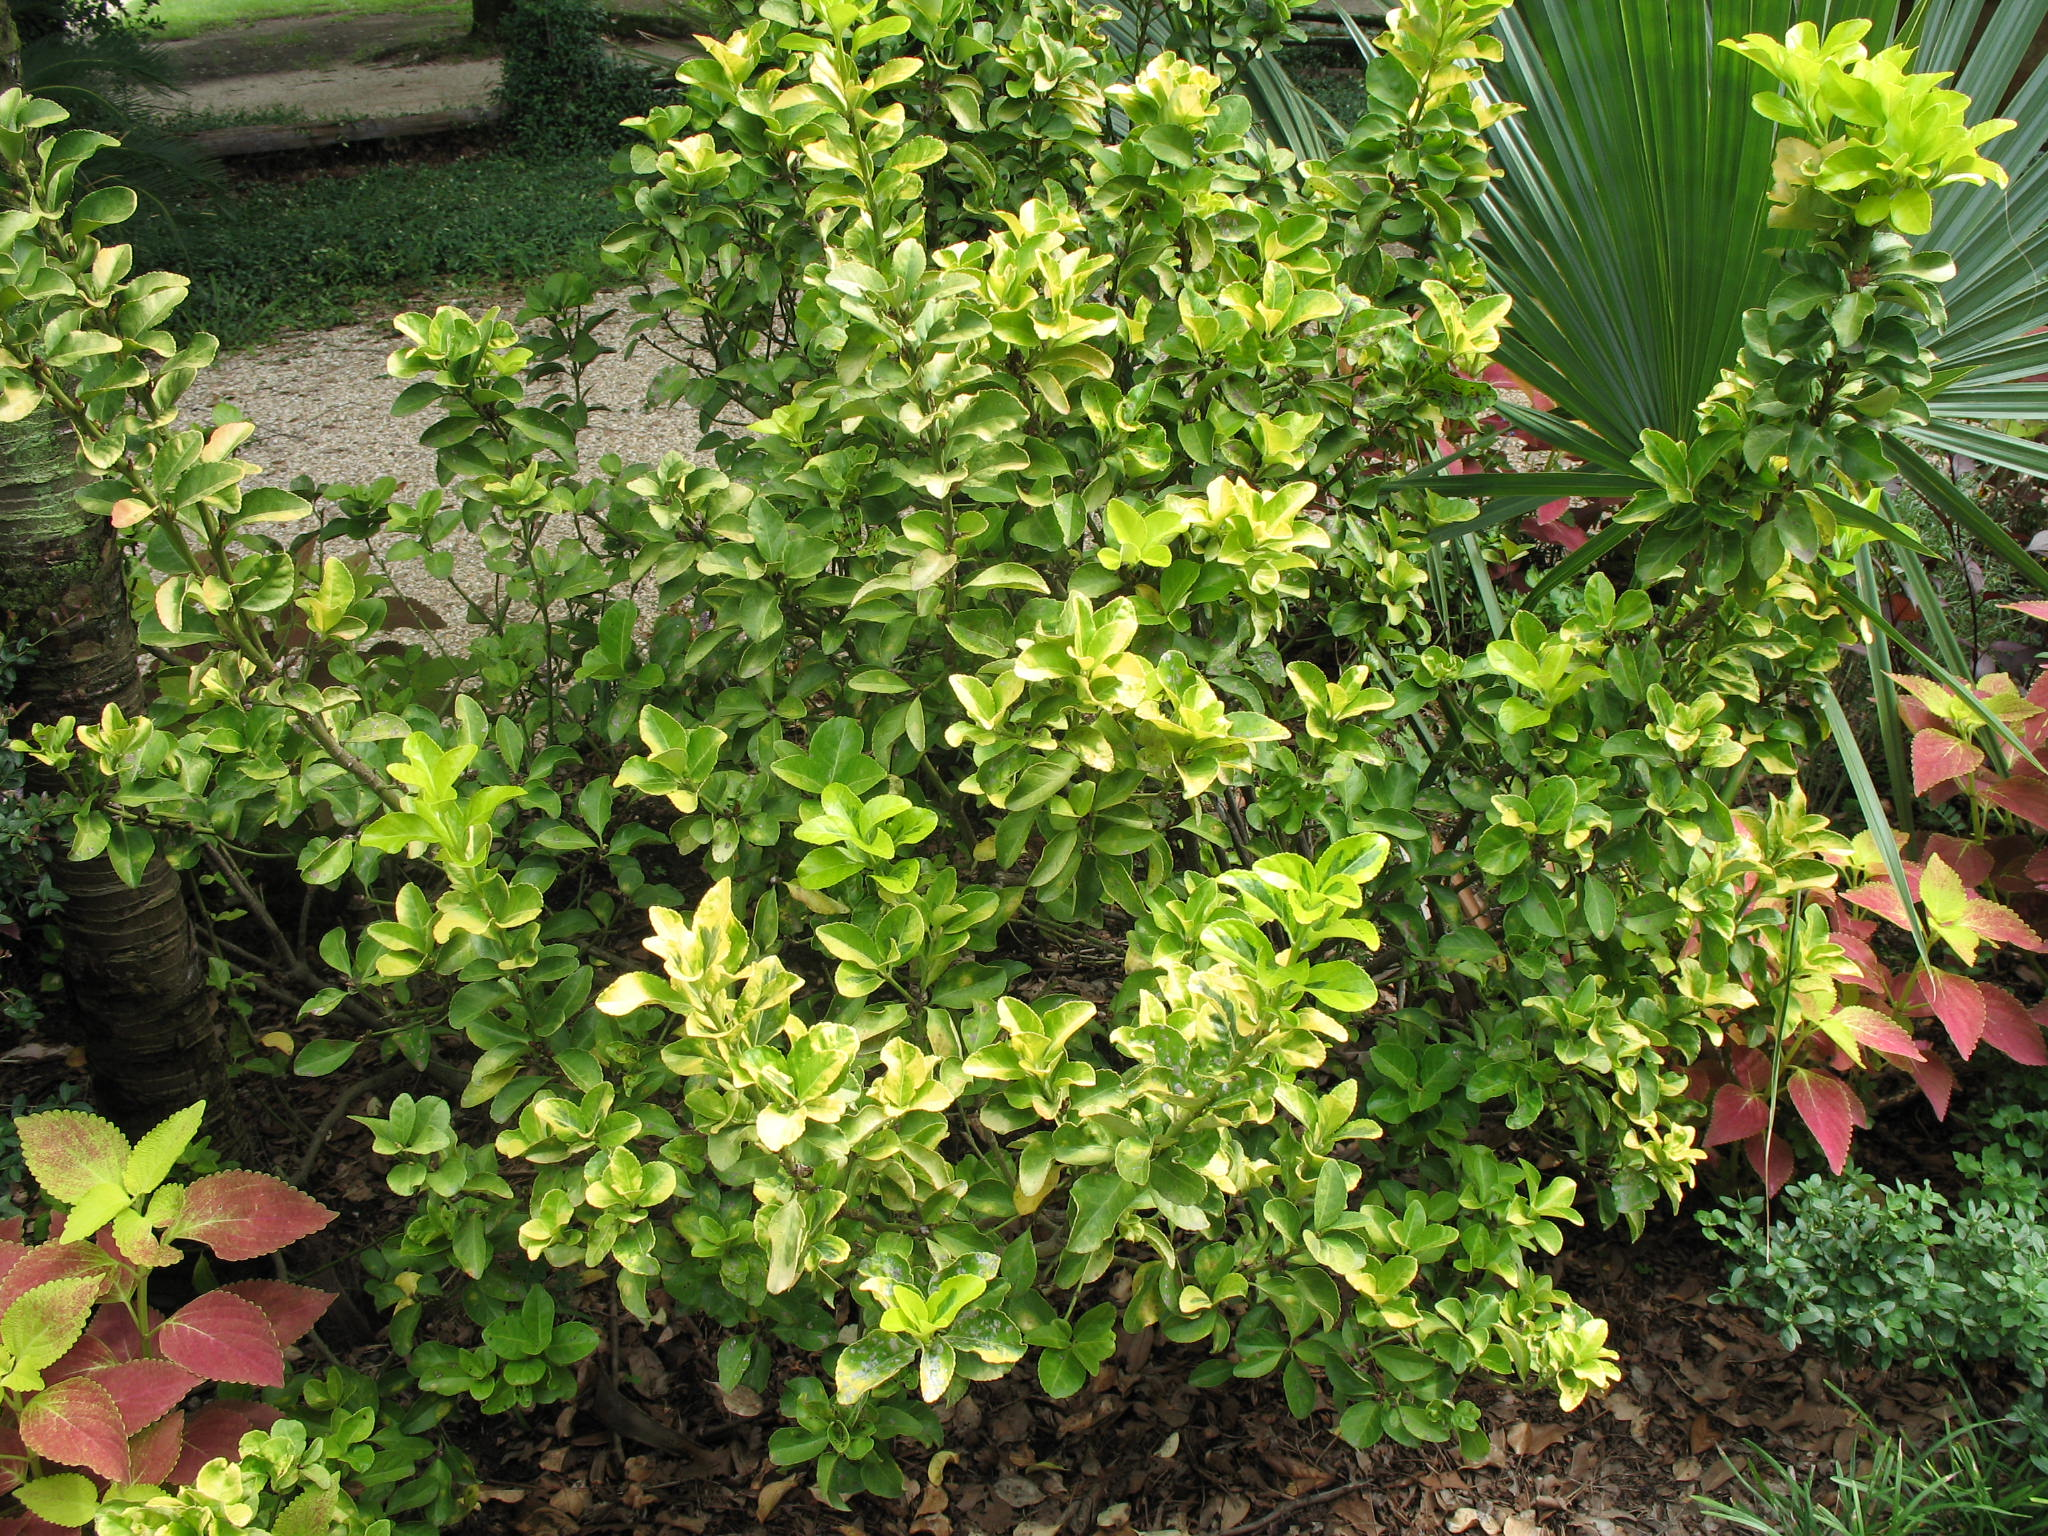 online plant guide euonymus japonicus 39 aureo marginata 39 golden euonymus. Black Bedroom Furniture Sets. Home Design Ideas